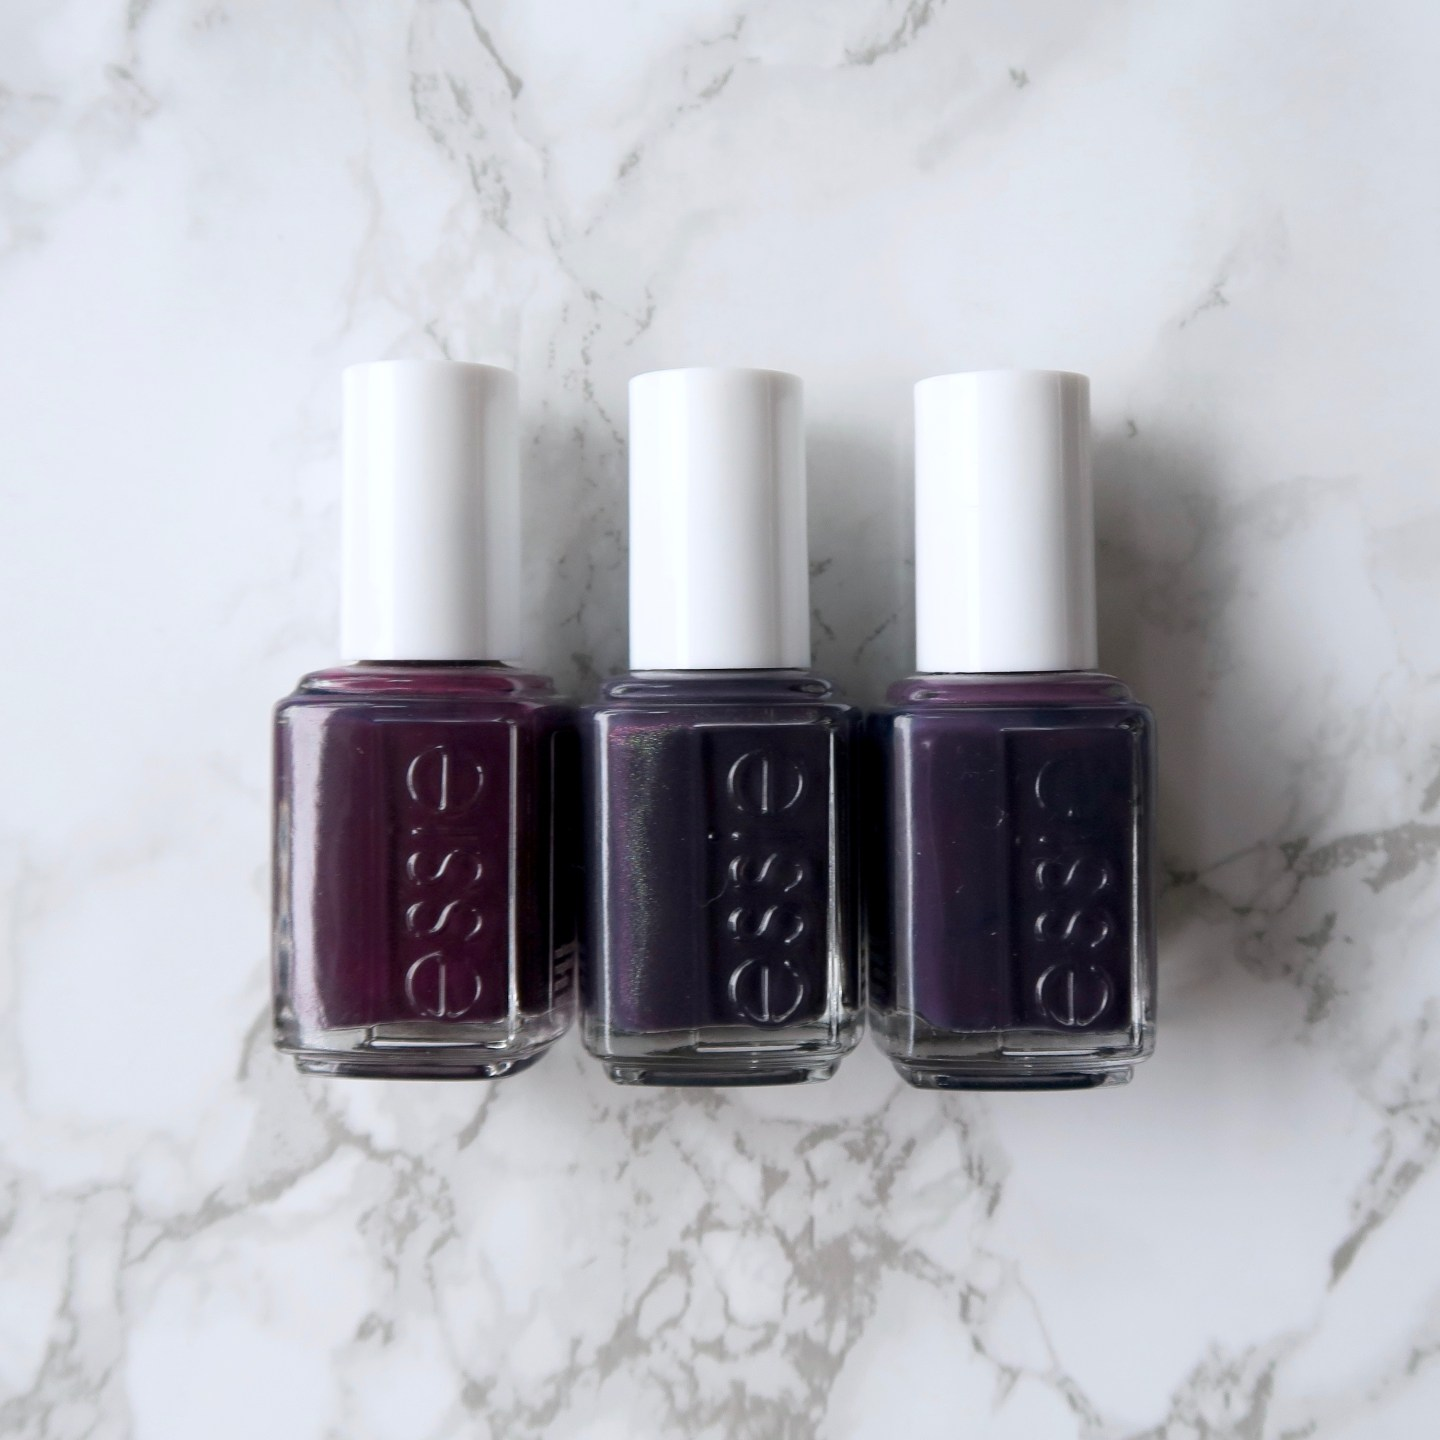 Essie Fall 2017 collection - Dress To The Nineties, comparison to similar essie polishes